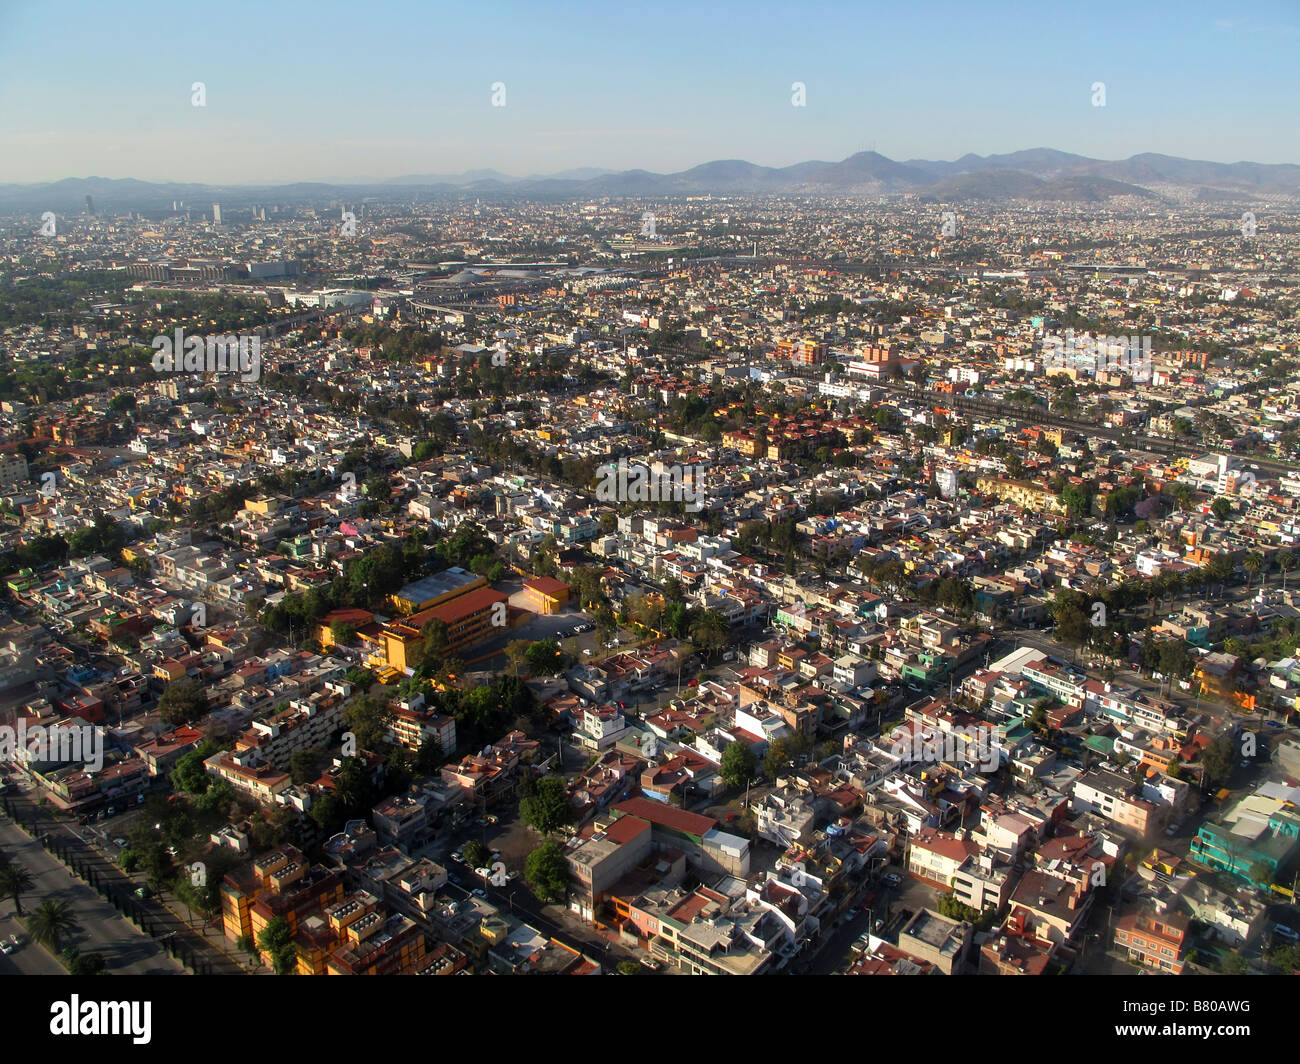 population in mexico city In 2030, the population of mexico will reach 137 million, an increase of 113% from 2017 population growth will continue to slow in 2017-2030 due to falling births and rising deaths and the country will age rapidly, compounded by falling fertility and birth rates as well as increases in older age groups.